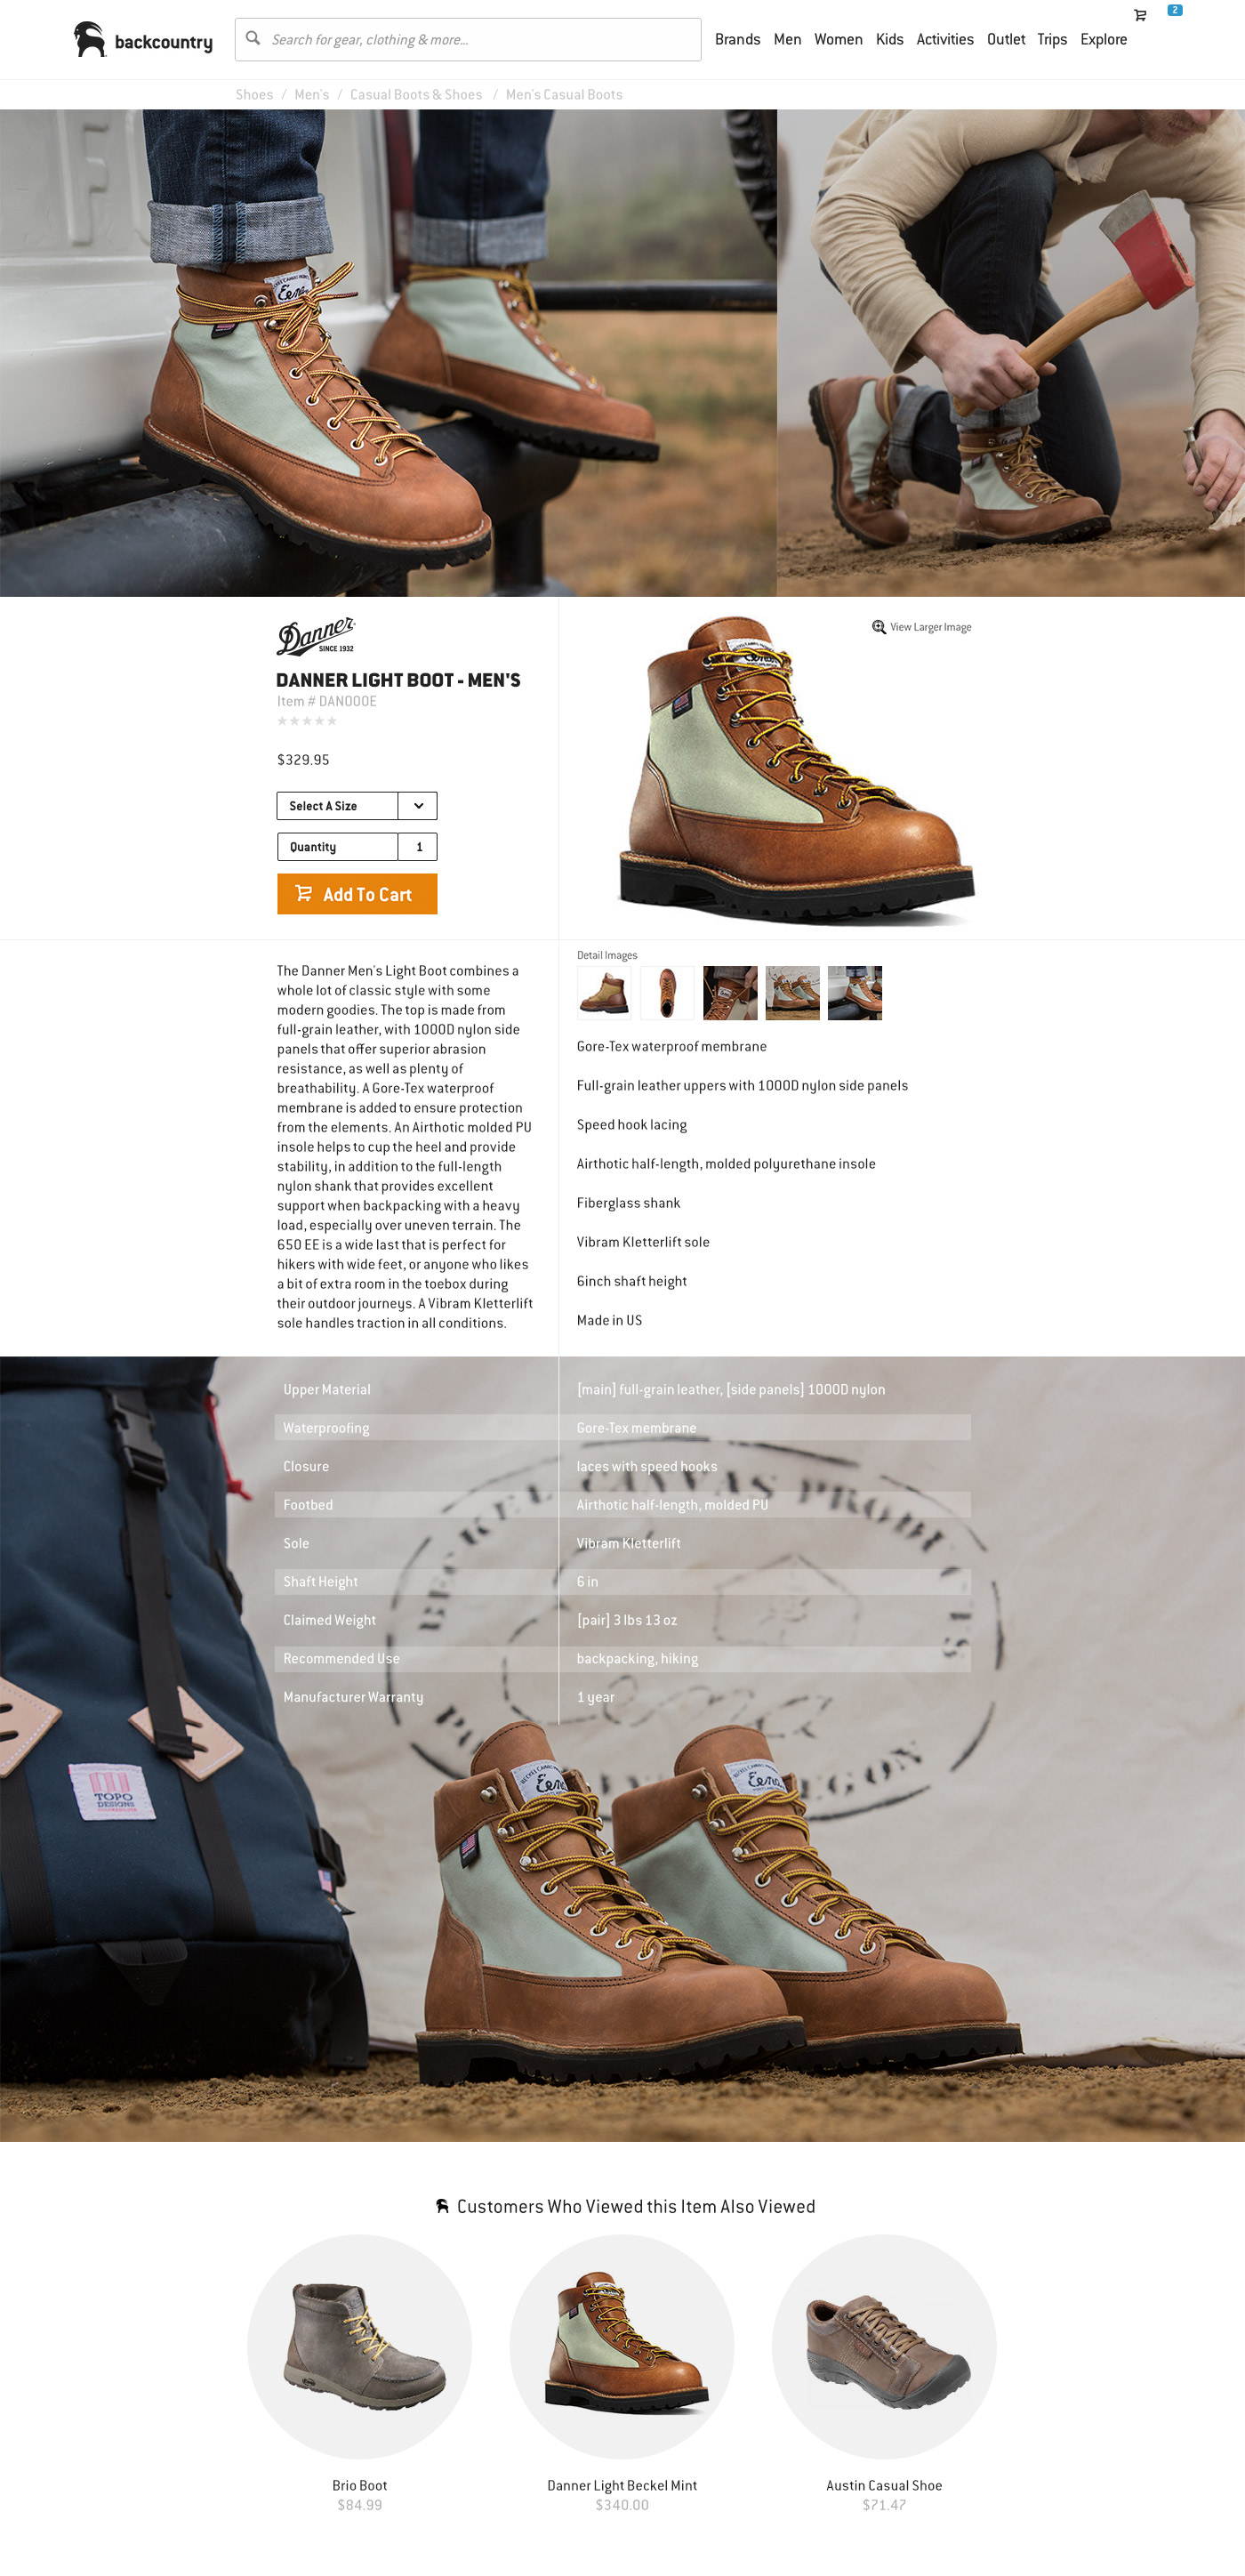 Backcountry.com Danner Product Detail Page